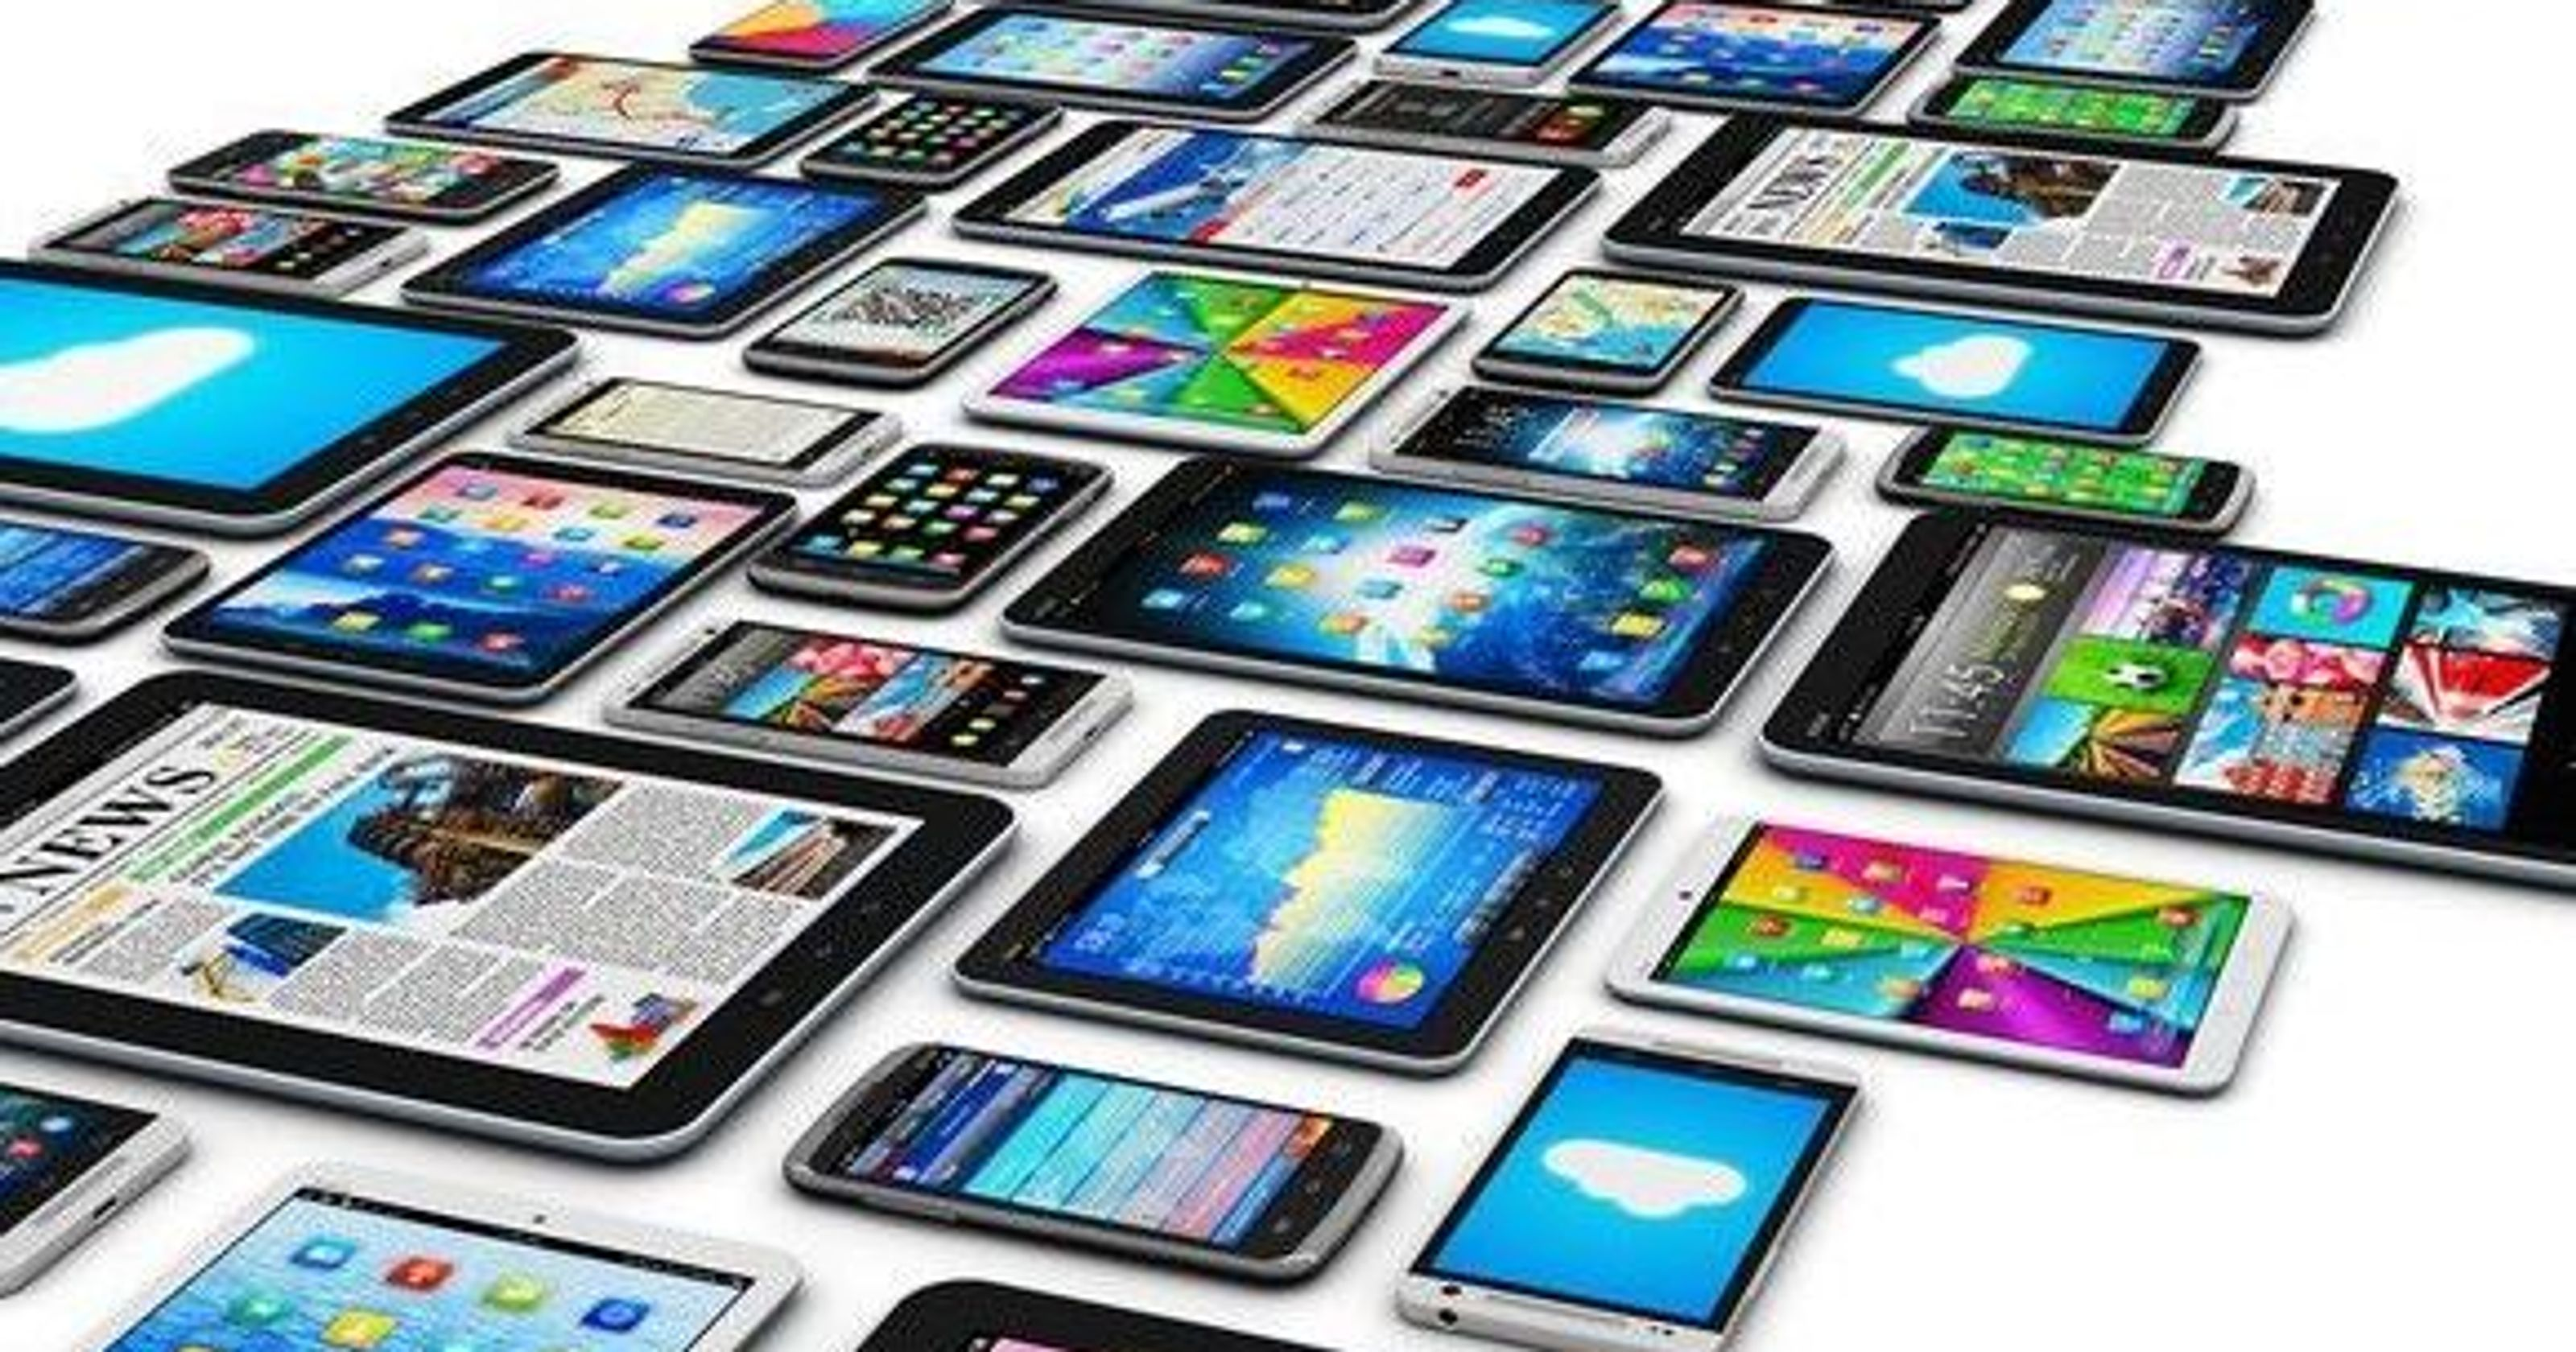 overrated smartphone features